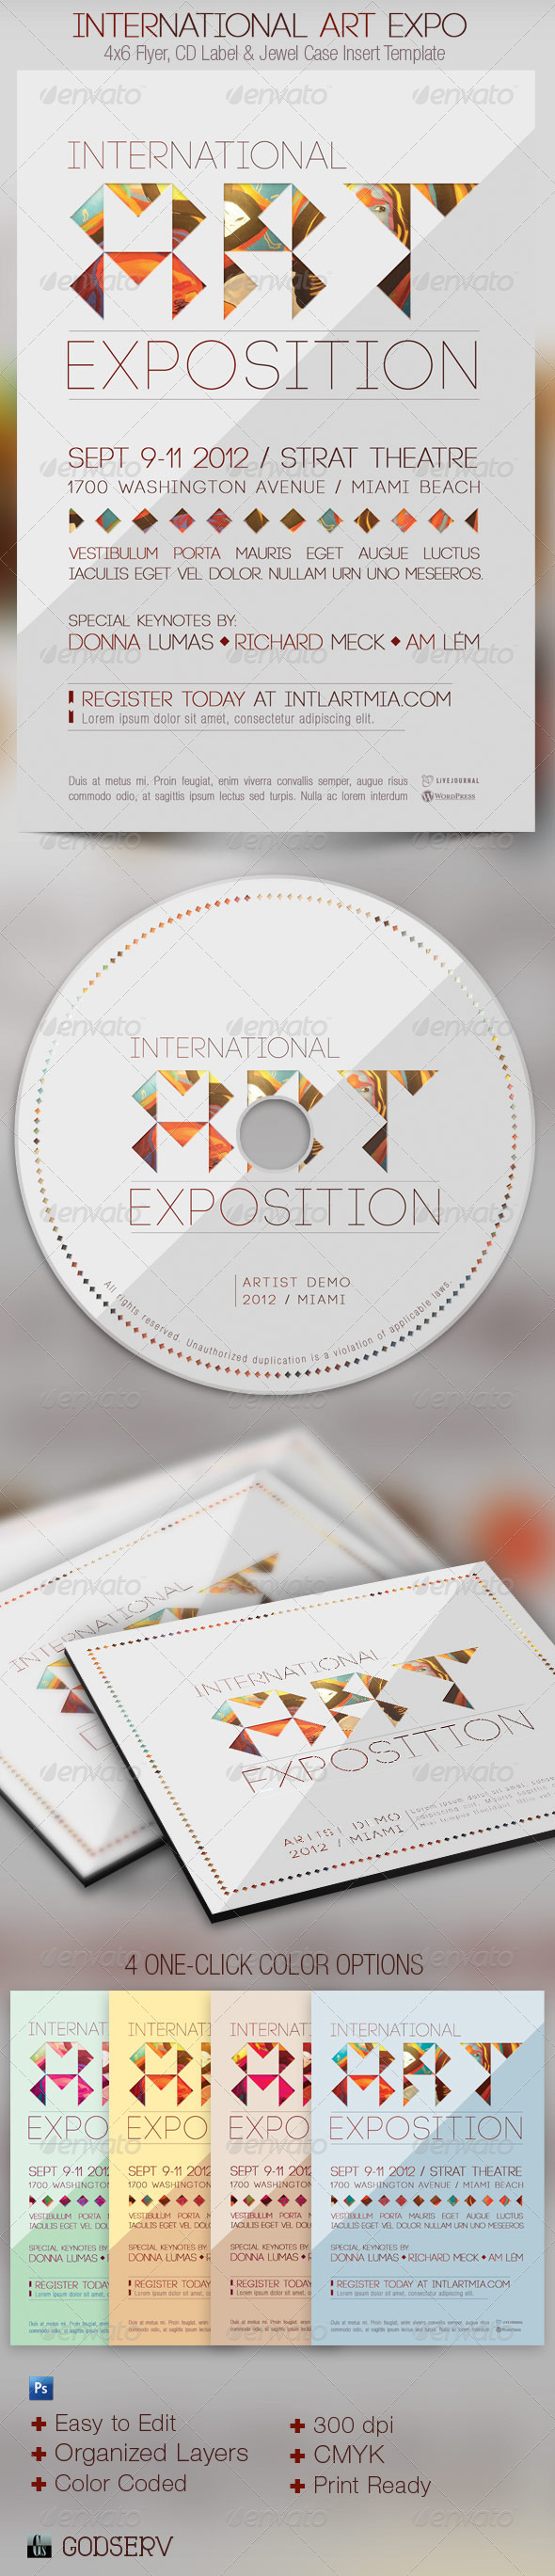 International Art Expo Flyer and CD Template - Events Flyers